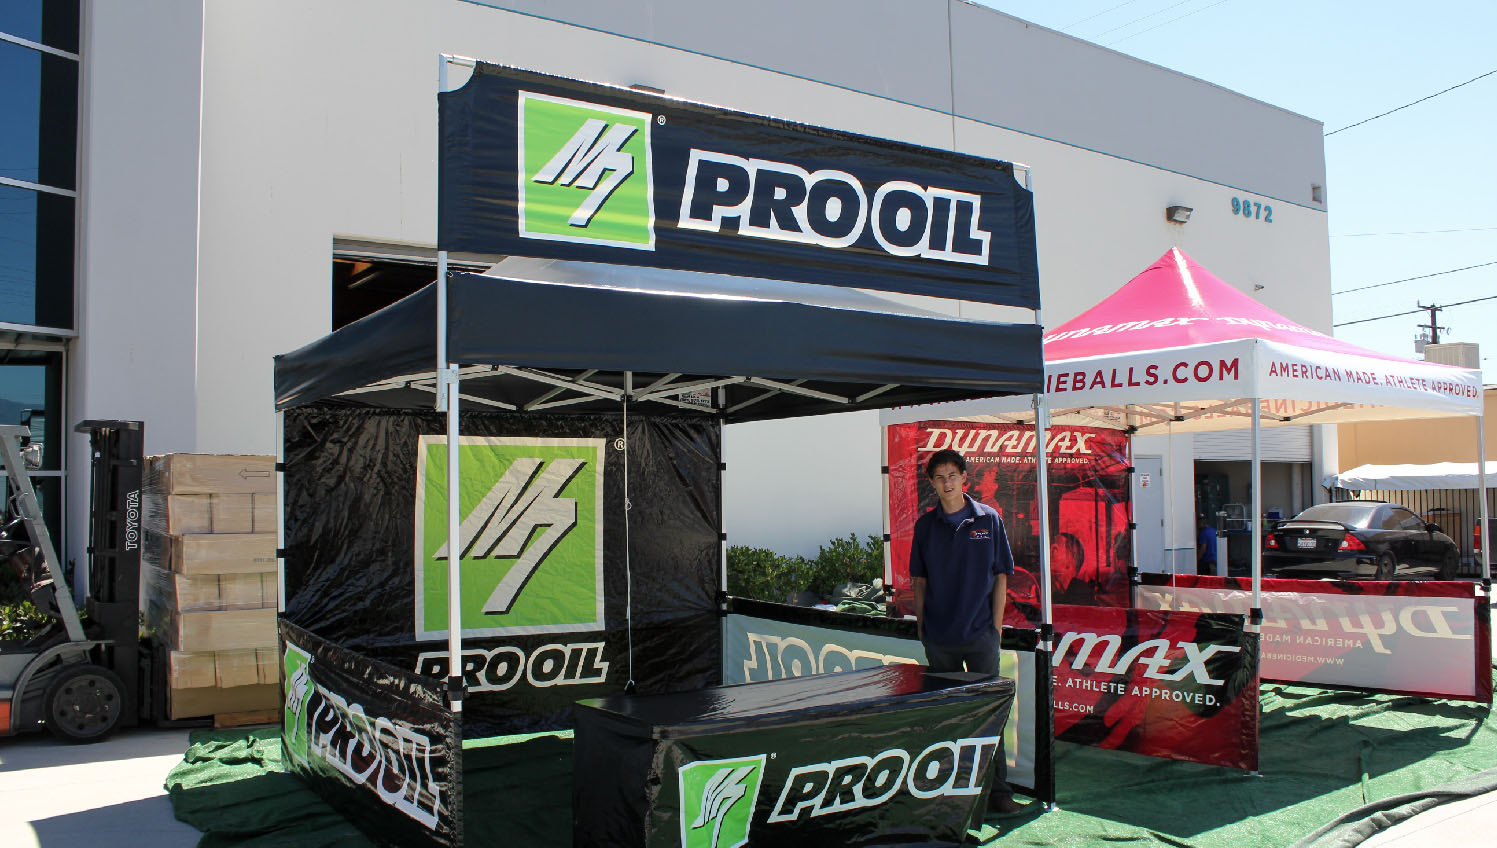 10x10 canopy with a pop up tent banner for Pro Oil